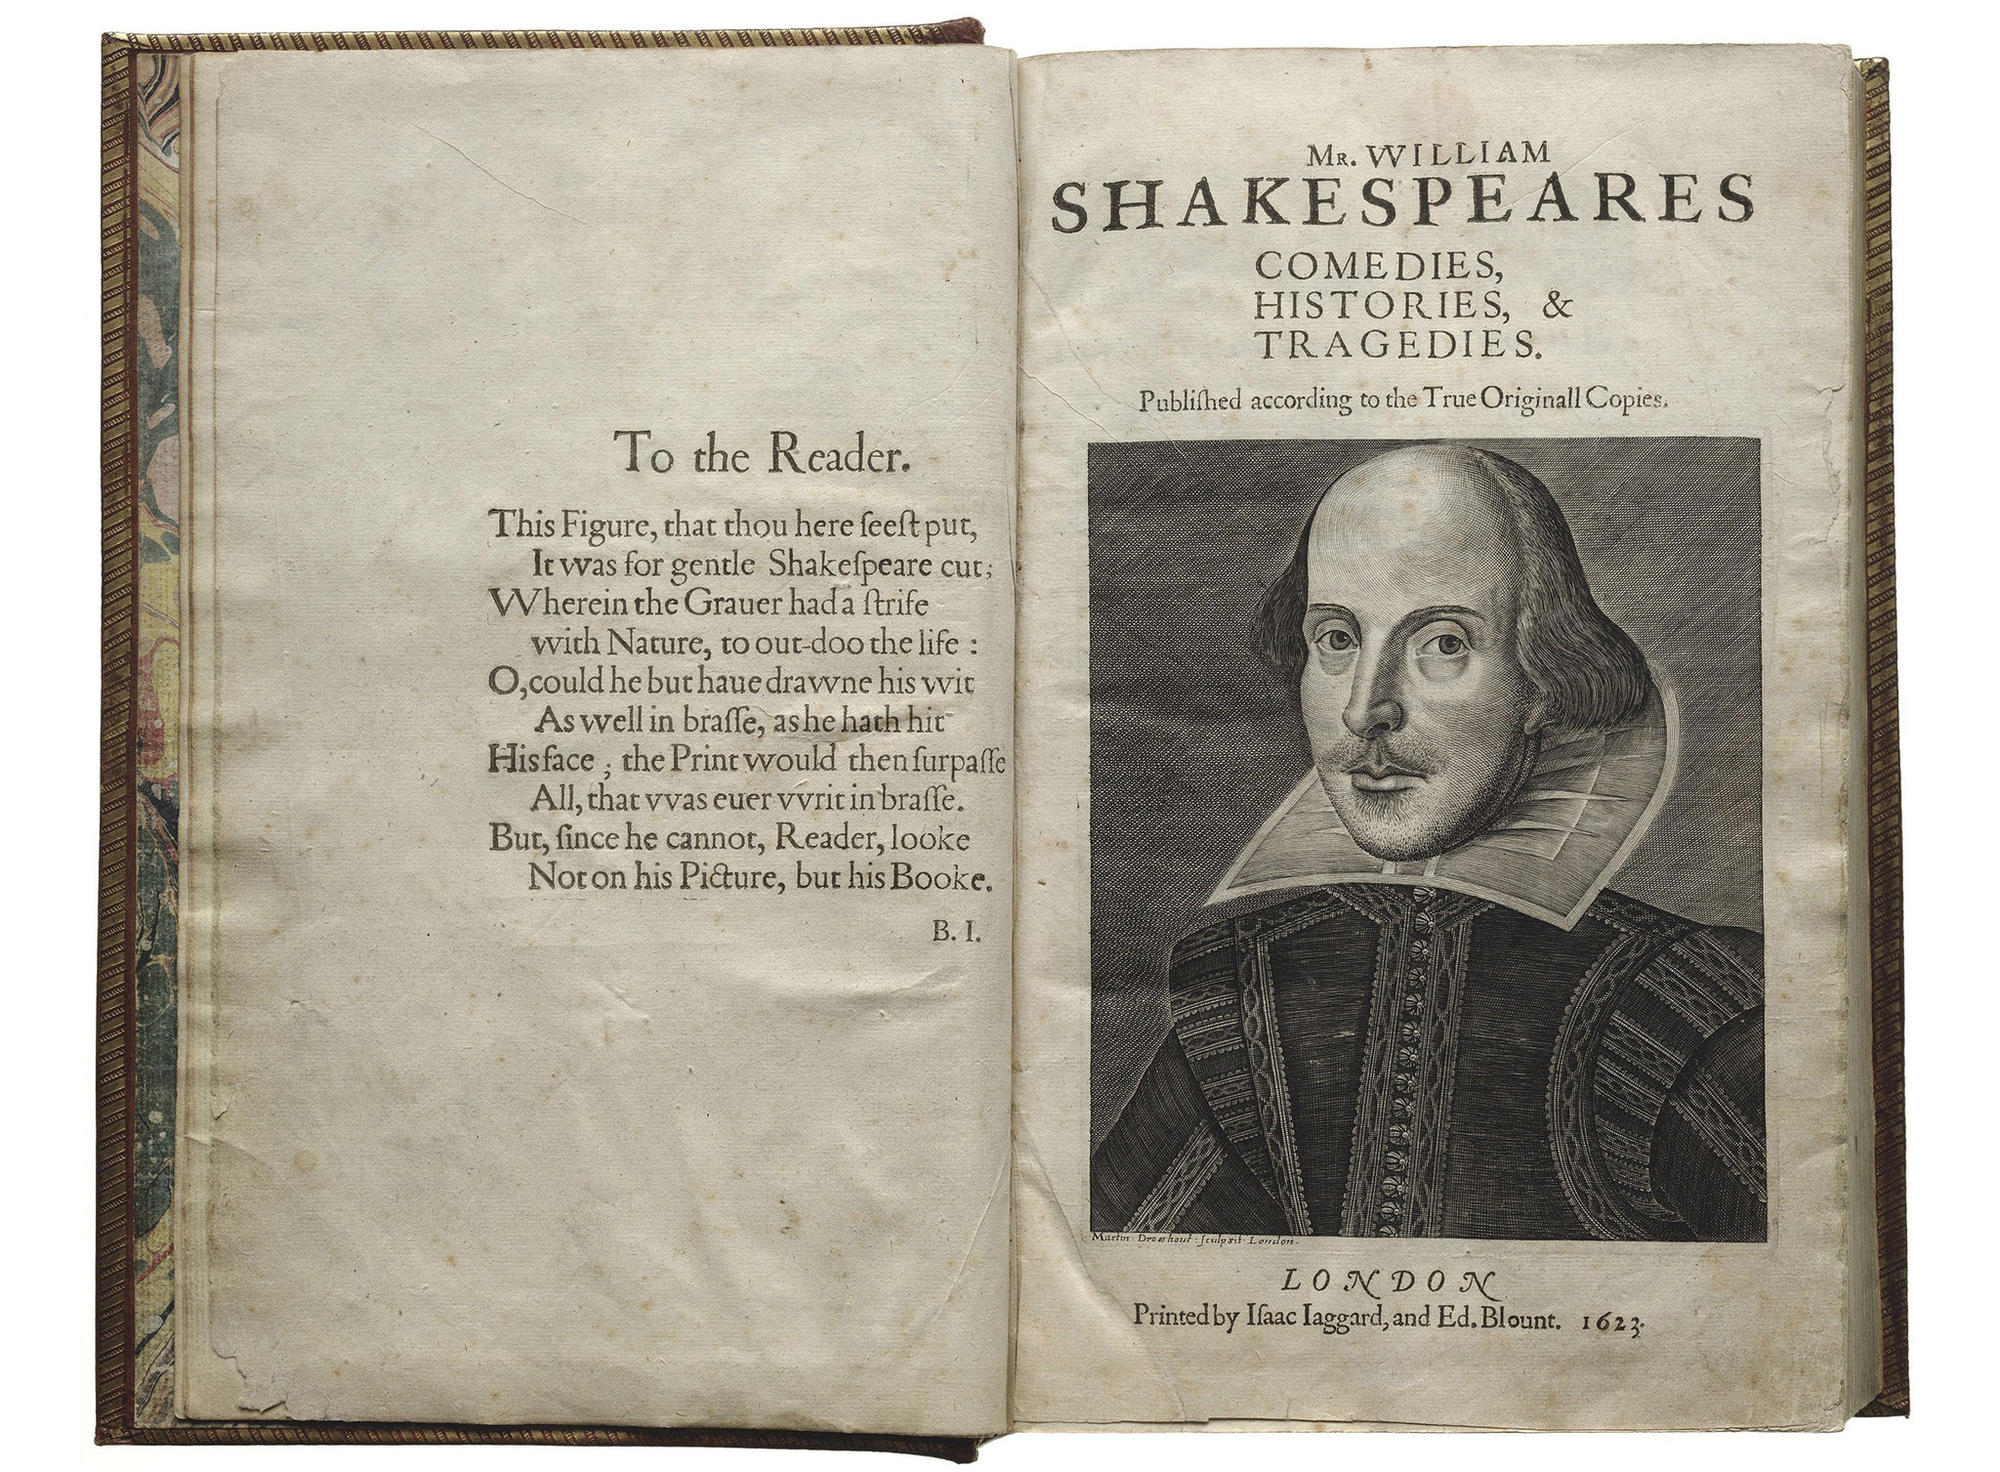 Title page with the Droeshout engraving of Shakespeare in the First Folio from 1623.